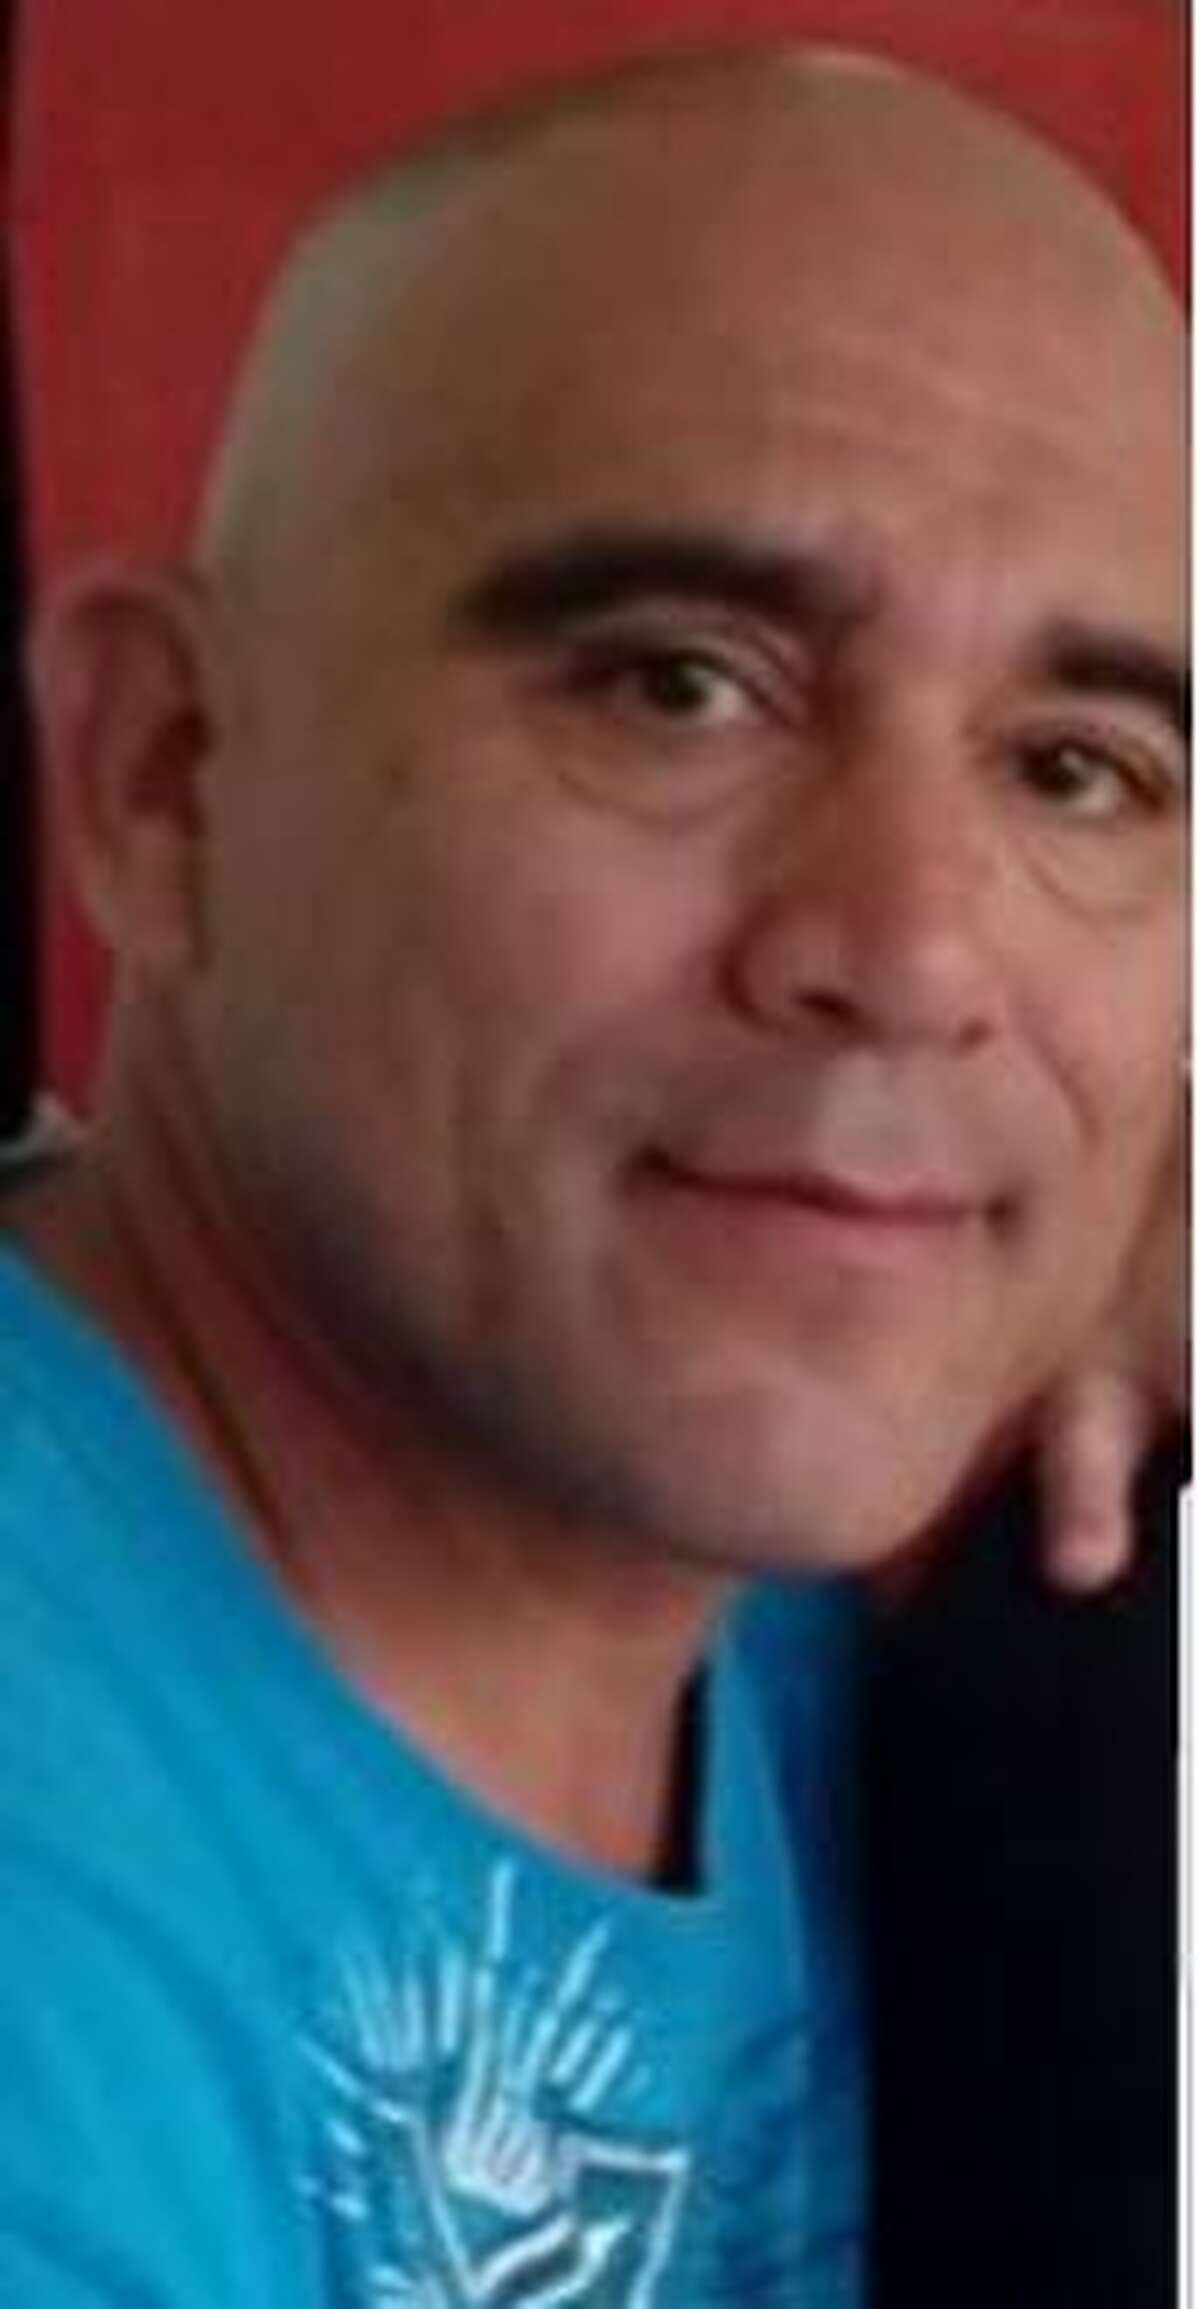 Henry Rosilez Rosilez was a 51-year-old Hispanic man who died May 28 from stab wounds at the 1200 block of Crosstimbers St, Houston. Rosilez spent most of his life in Houston but loved the Dallas Cowboys. His sister said he was caring and would help anybody and everybody. He kept to himself and always felt like an outsider, but he was close with his sister. Every day he rode his bike to work at a construction site, rain or shine. Rosilez had been trying to turn his life around, and was working on giving up drinking and drugs.